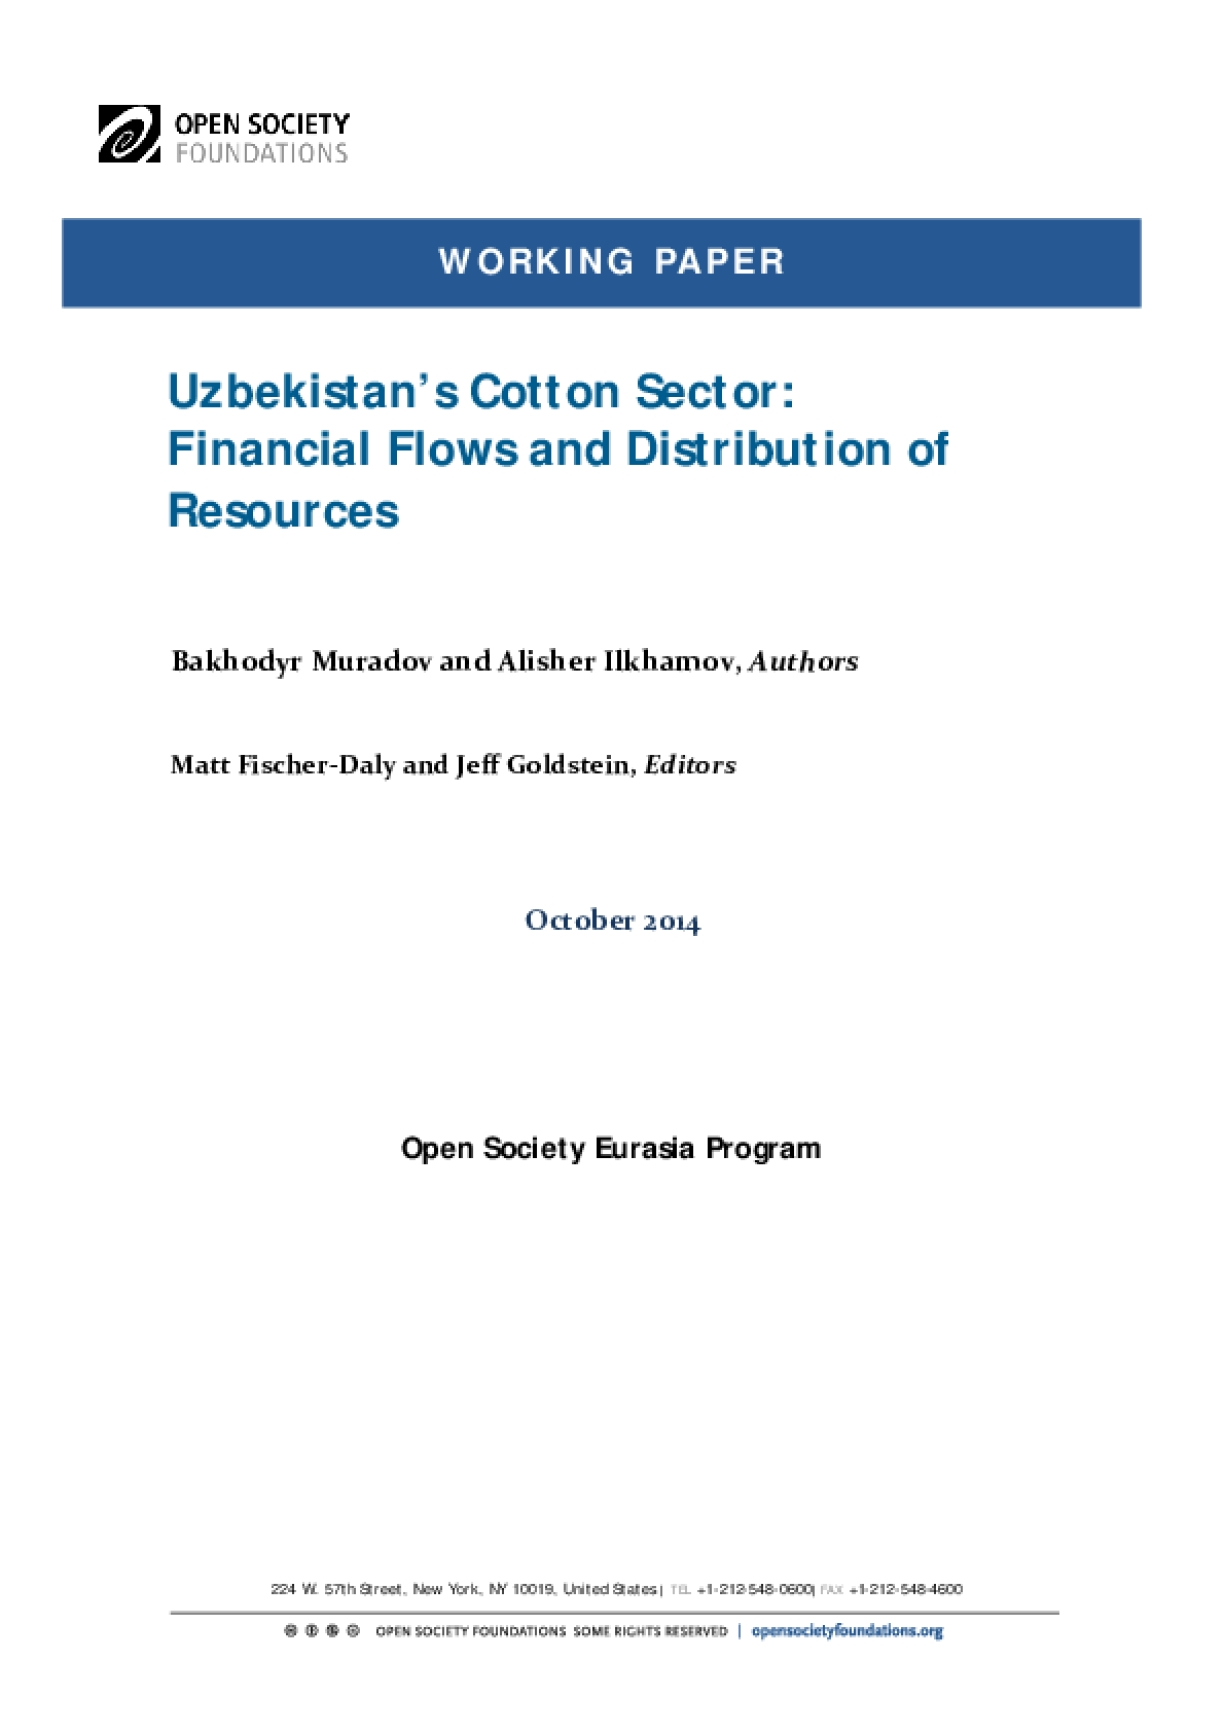 Uzbekistan's Cotton Sector: Financial Flows and Distribution of Resources